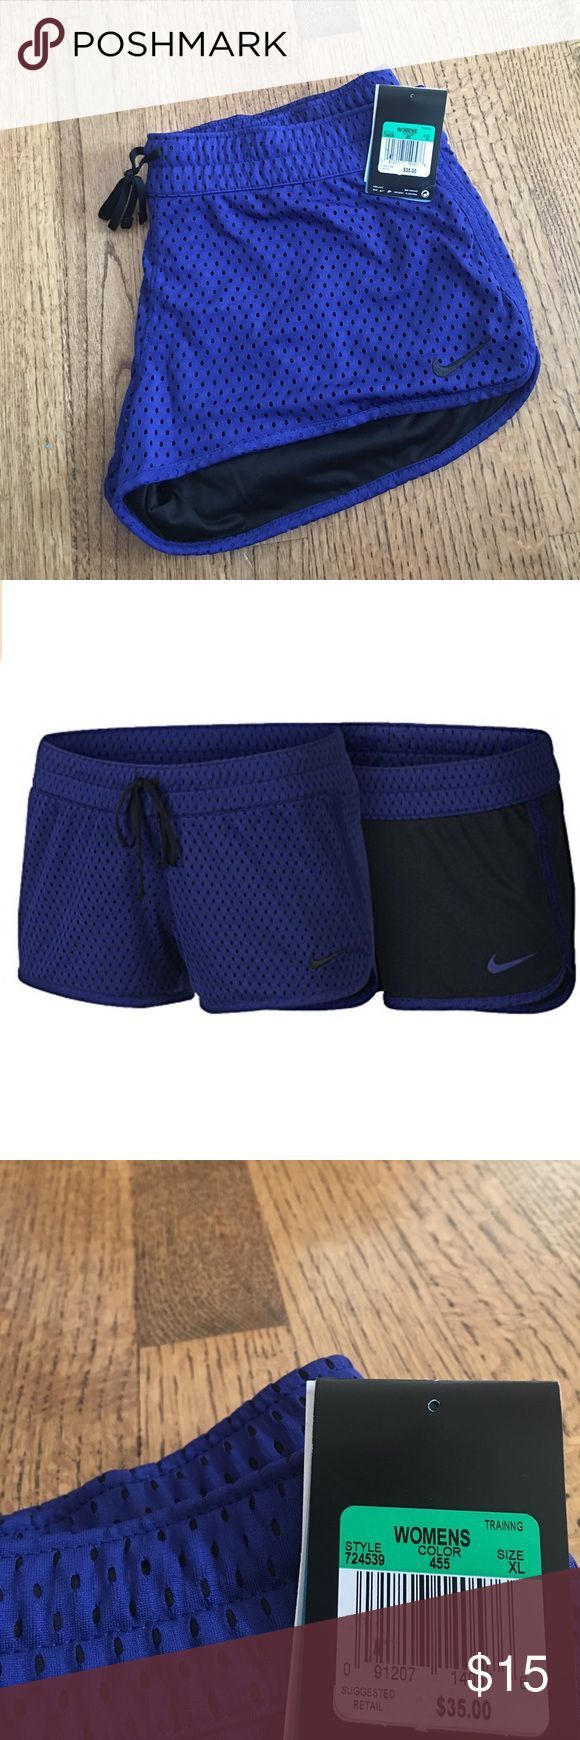 NWT Nike Women's Training Shorts NWT Nike Women's Training Shorts. Brand new, never worn! Reversible Shorts.  *Note: these shorts are a little shorter than some Nike running shorts, but they are still great for working out or casual wear Nike Shorts